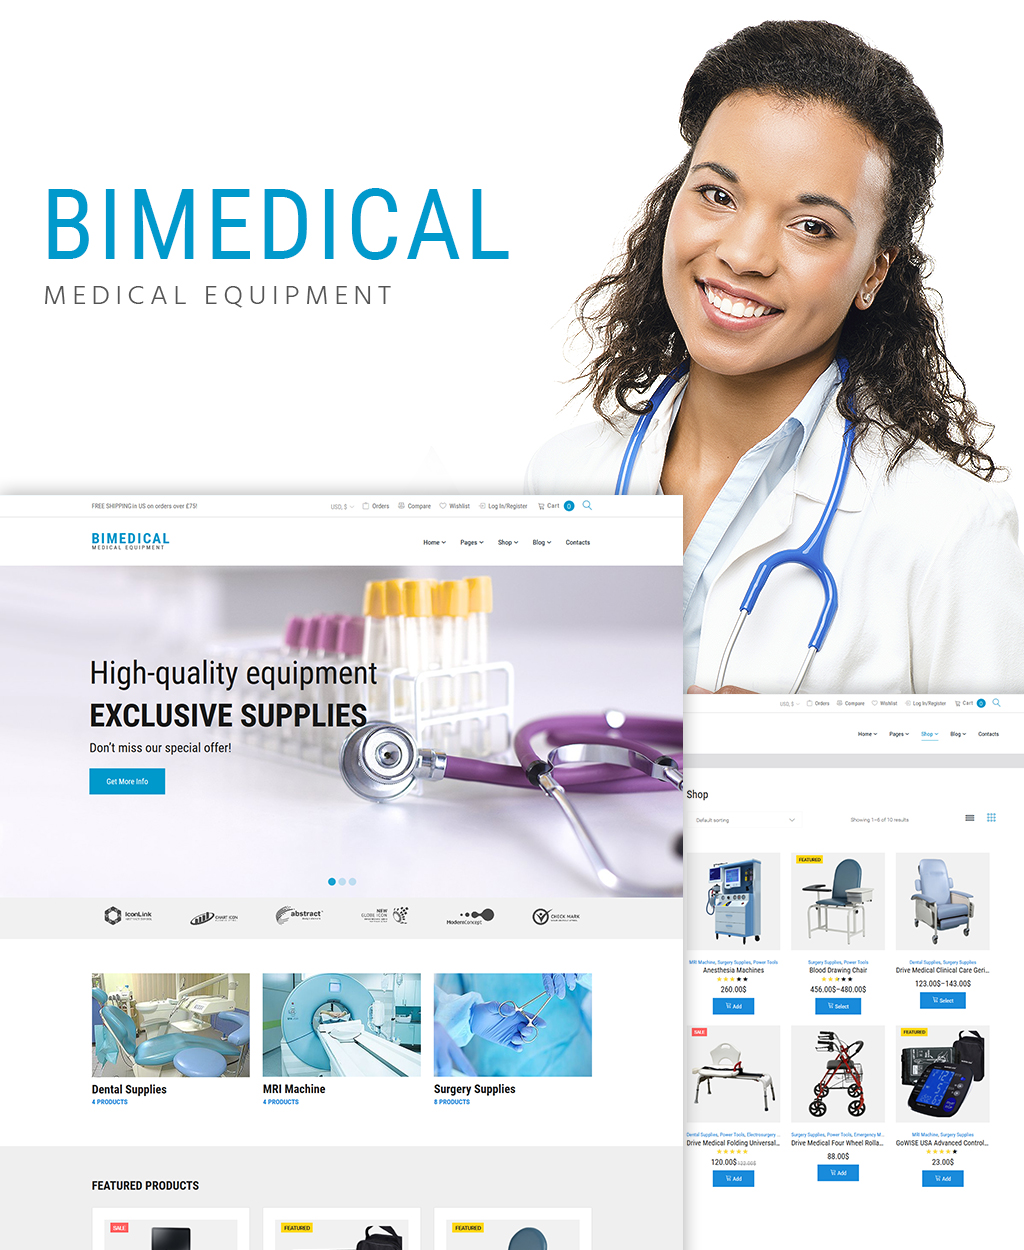 Bimedical- Medical Equipment Responsive WooCommerce Theme WooCommerce Theme